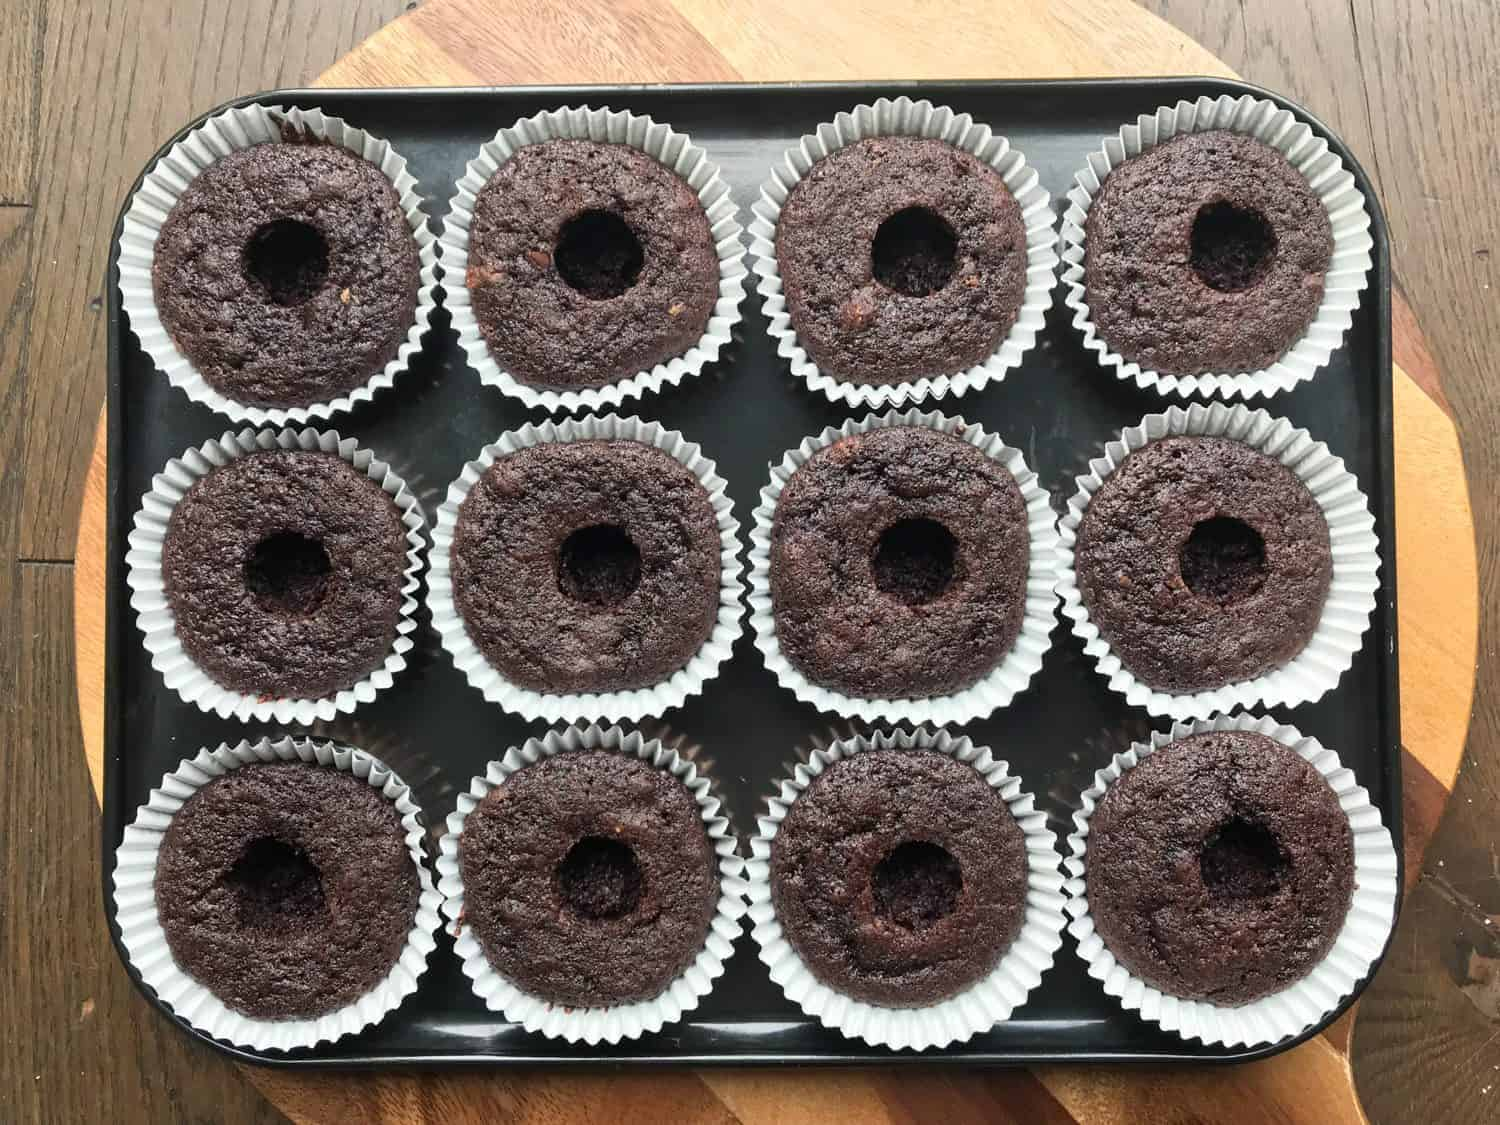 A tray of 12 chocolate cupcakes with holes in the centre.